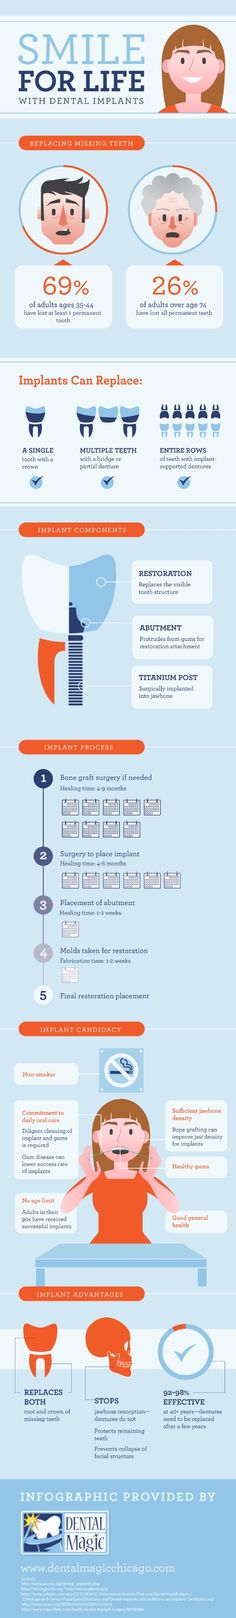 The healing time for bone graft surgery, sometimes needed for dental implants, is typically between 4 and 9 months. Find more facts about the dental implant process on this infographic from a dentist in Chicago.